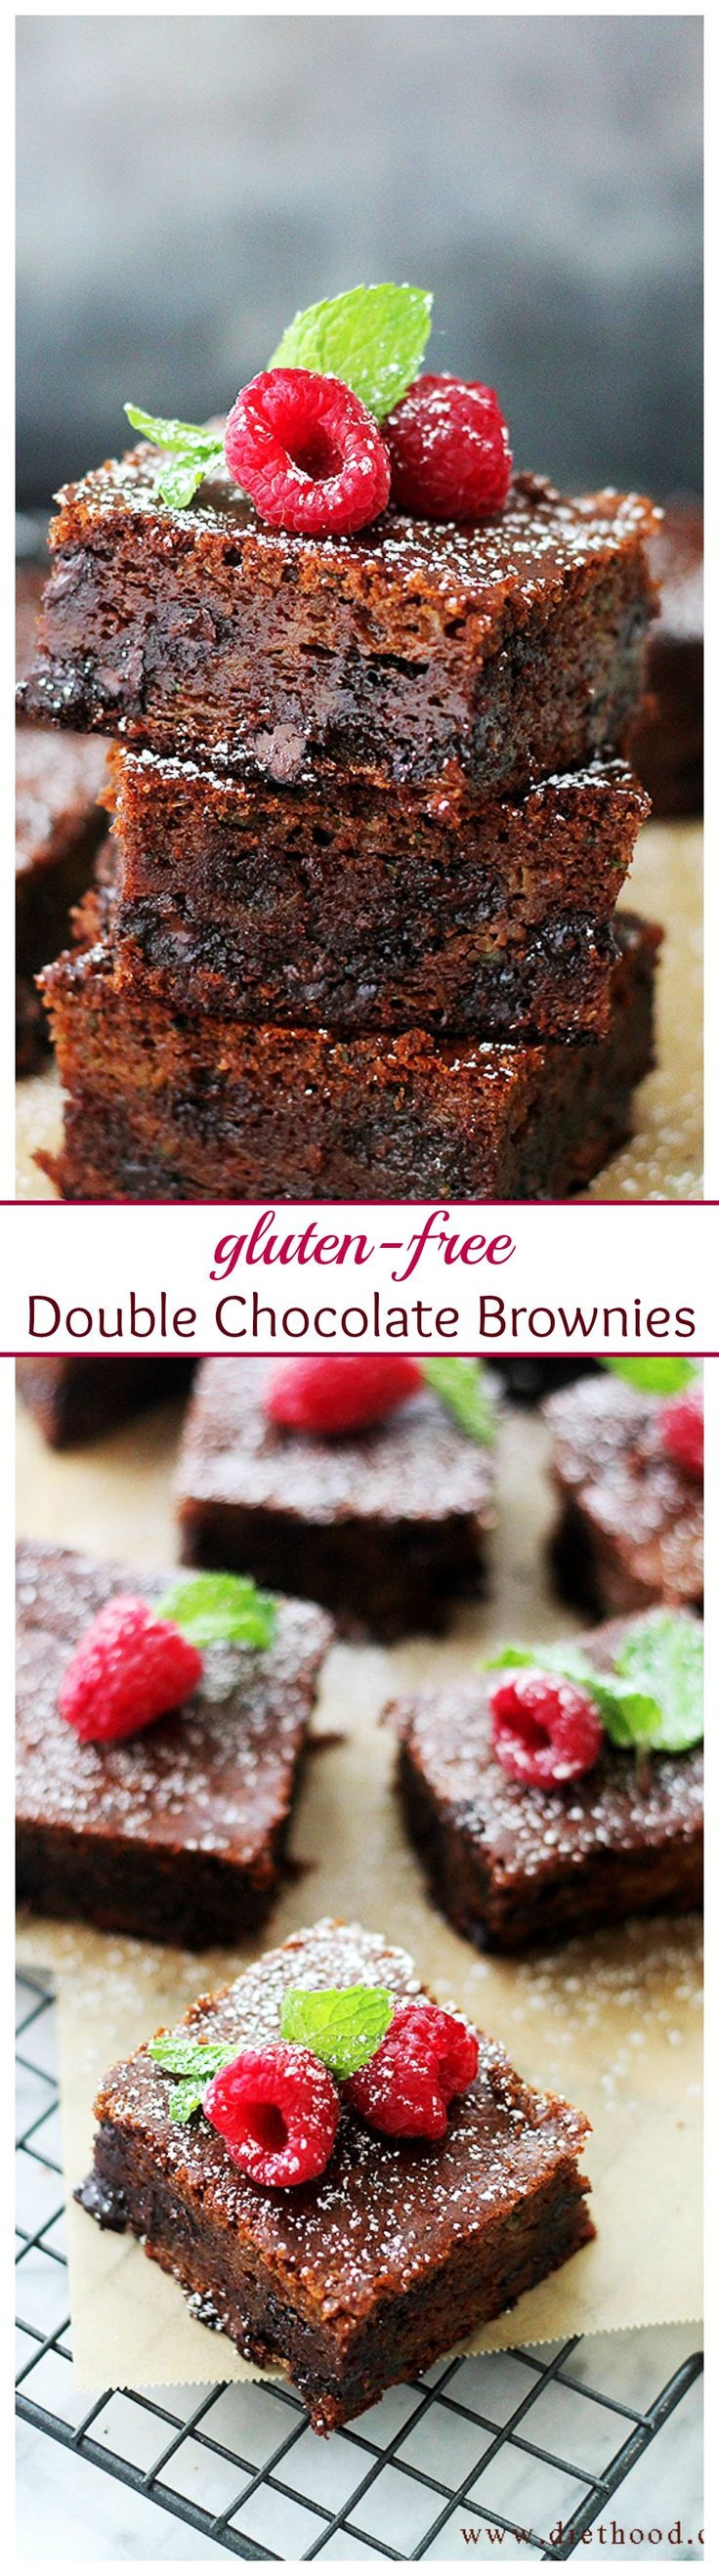 Decadent and fudgy Double Chocolate Brownies made with creamy Cashew Butter, Zucchini, cocoa, and chocolate chips.